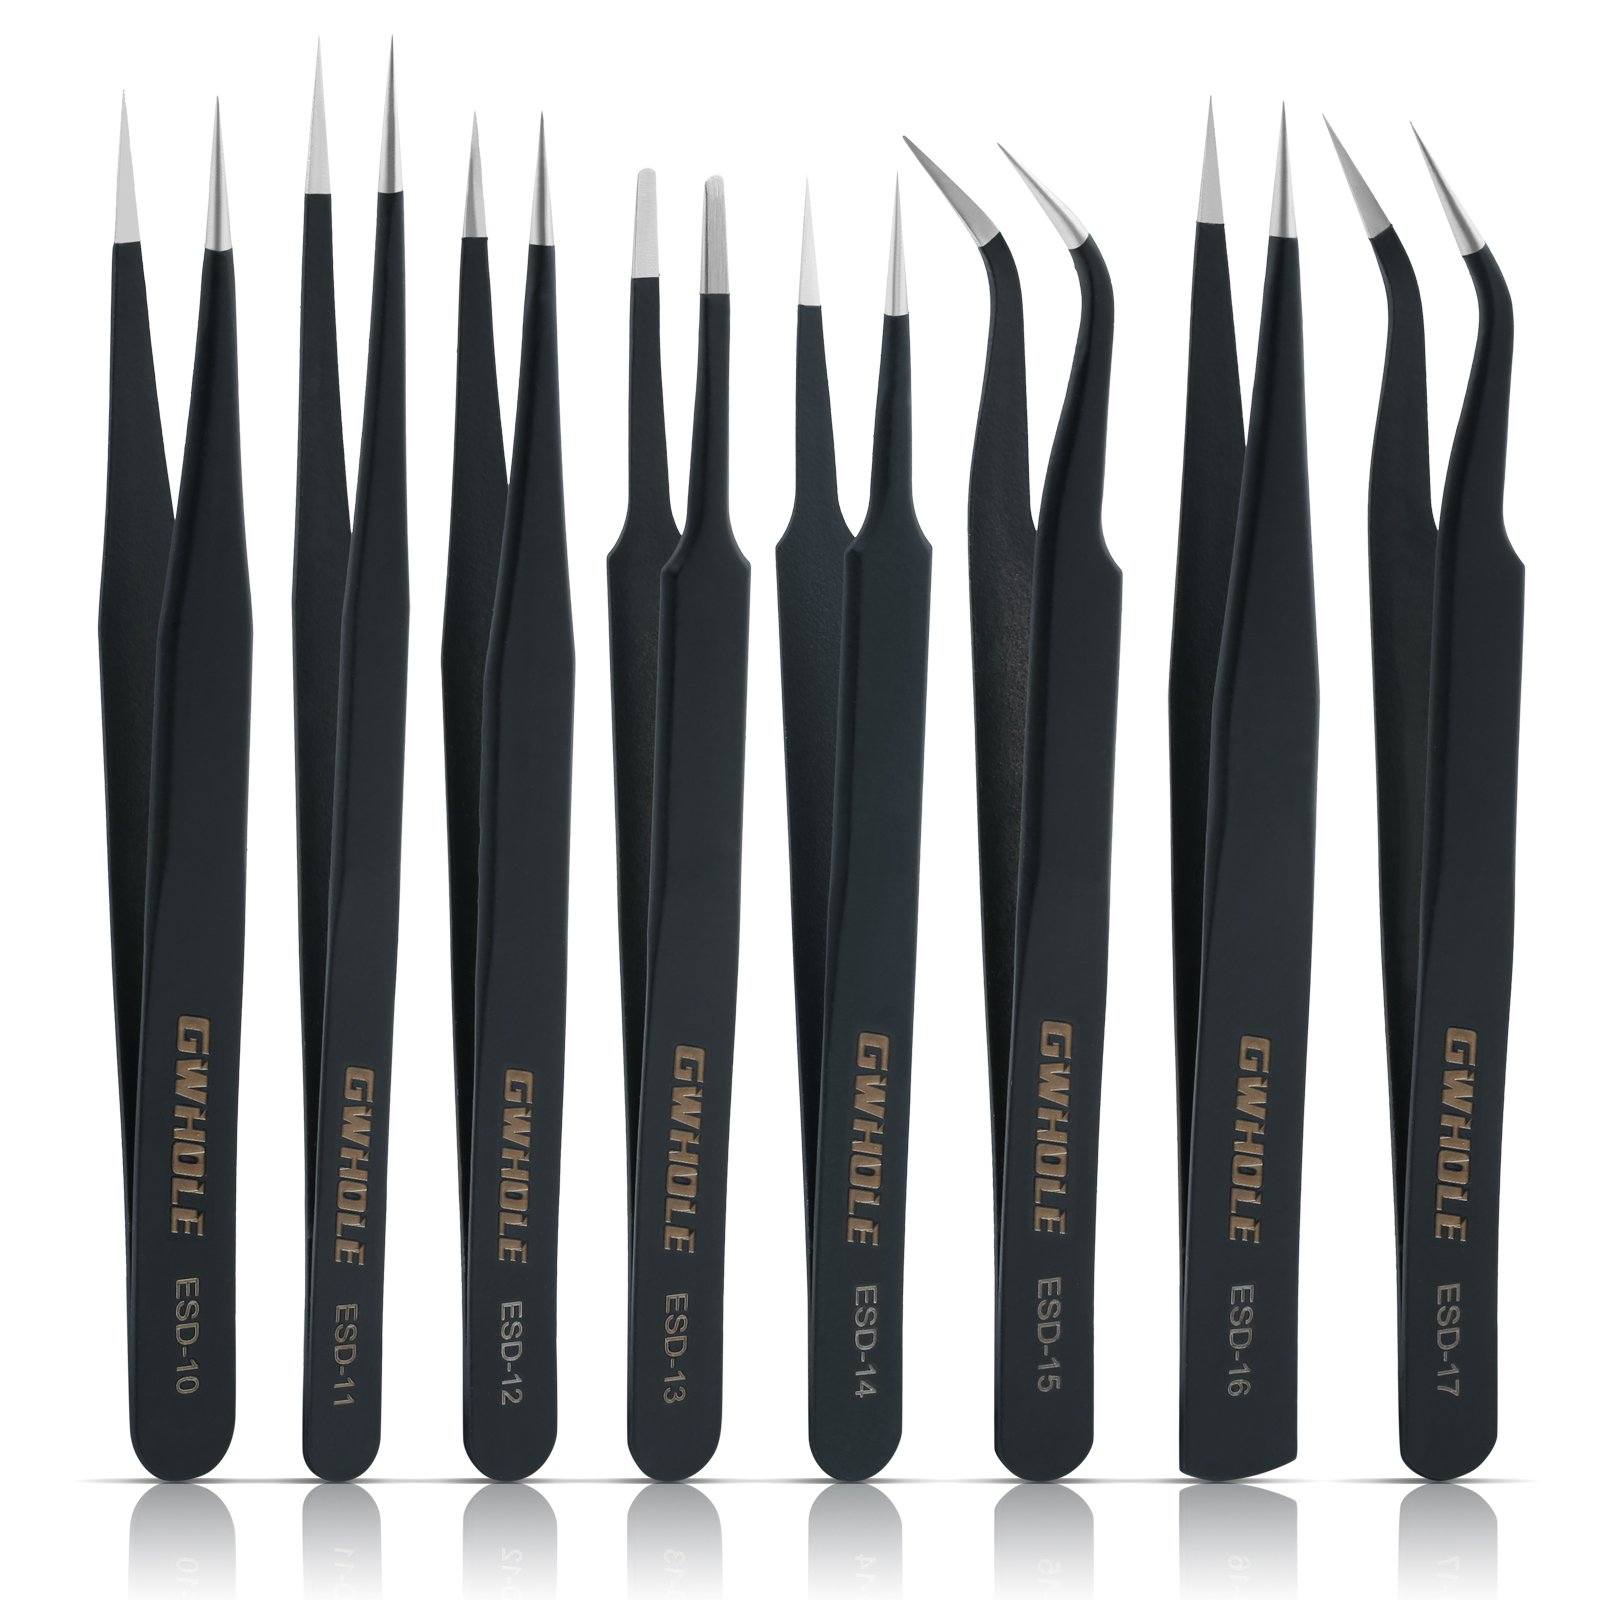 GWHOLE 8 Pcs Precision Anti-Static ESD Stainless Steel Tweezers Set for Electronics, Jewelry, Crafts by GWHOLE